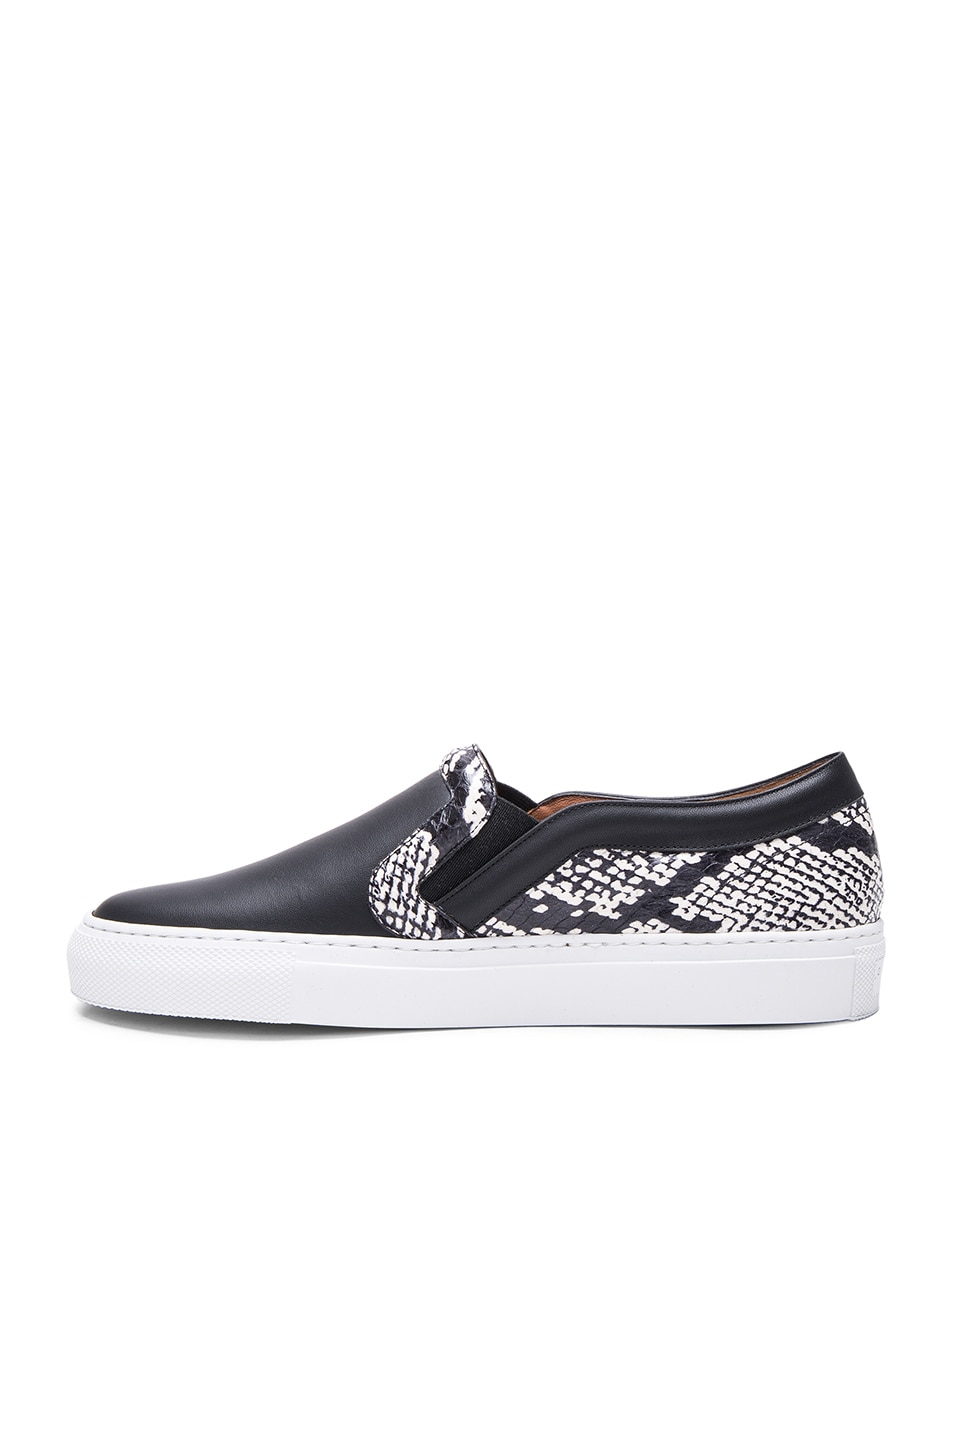 Image 5 of Givenchy Low Skate Elaphe Sneakers in Black & White